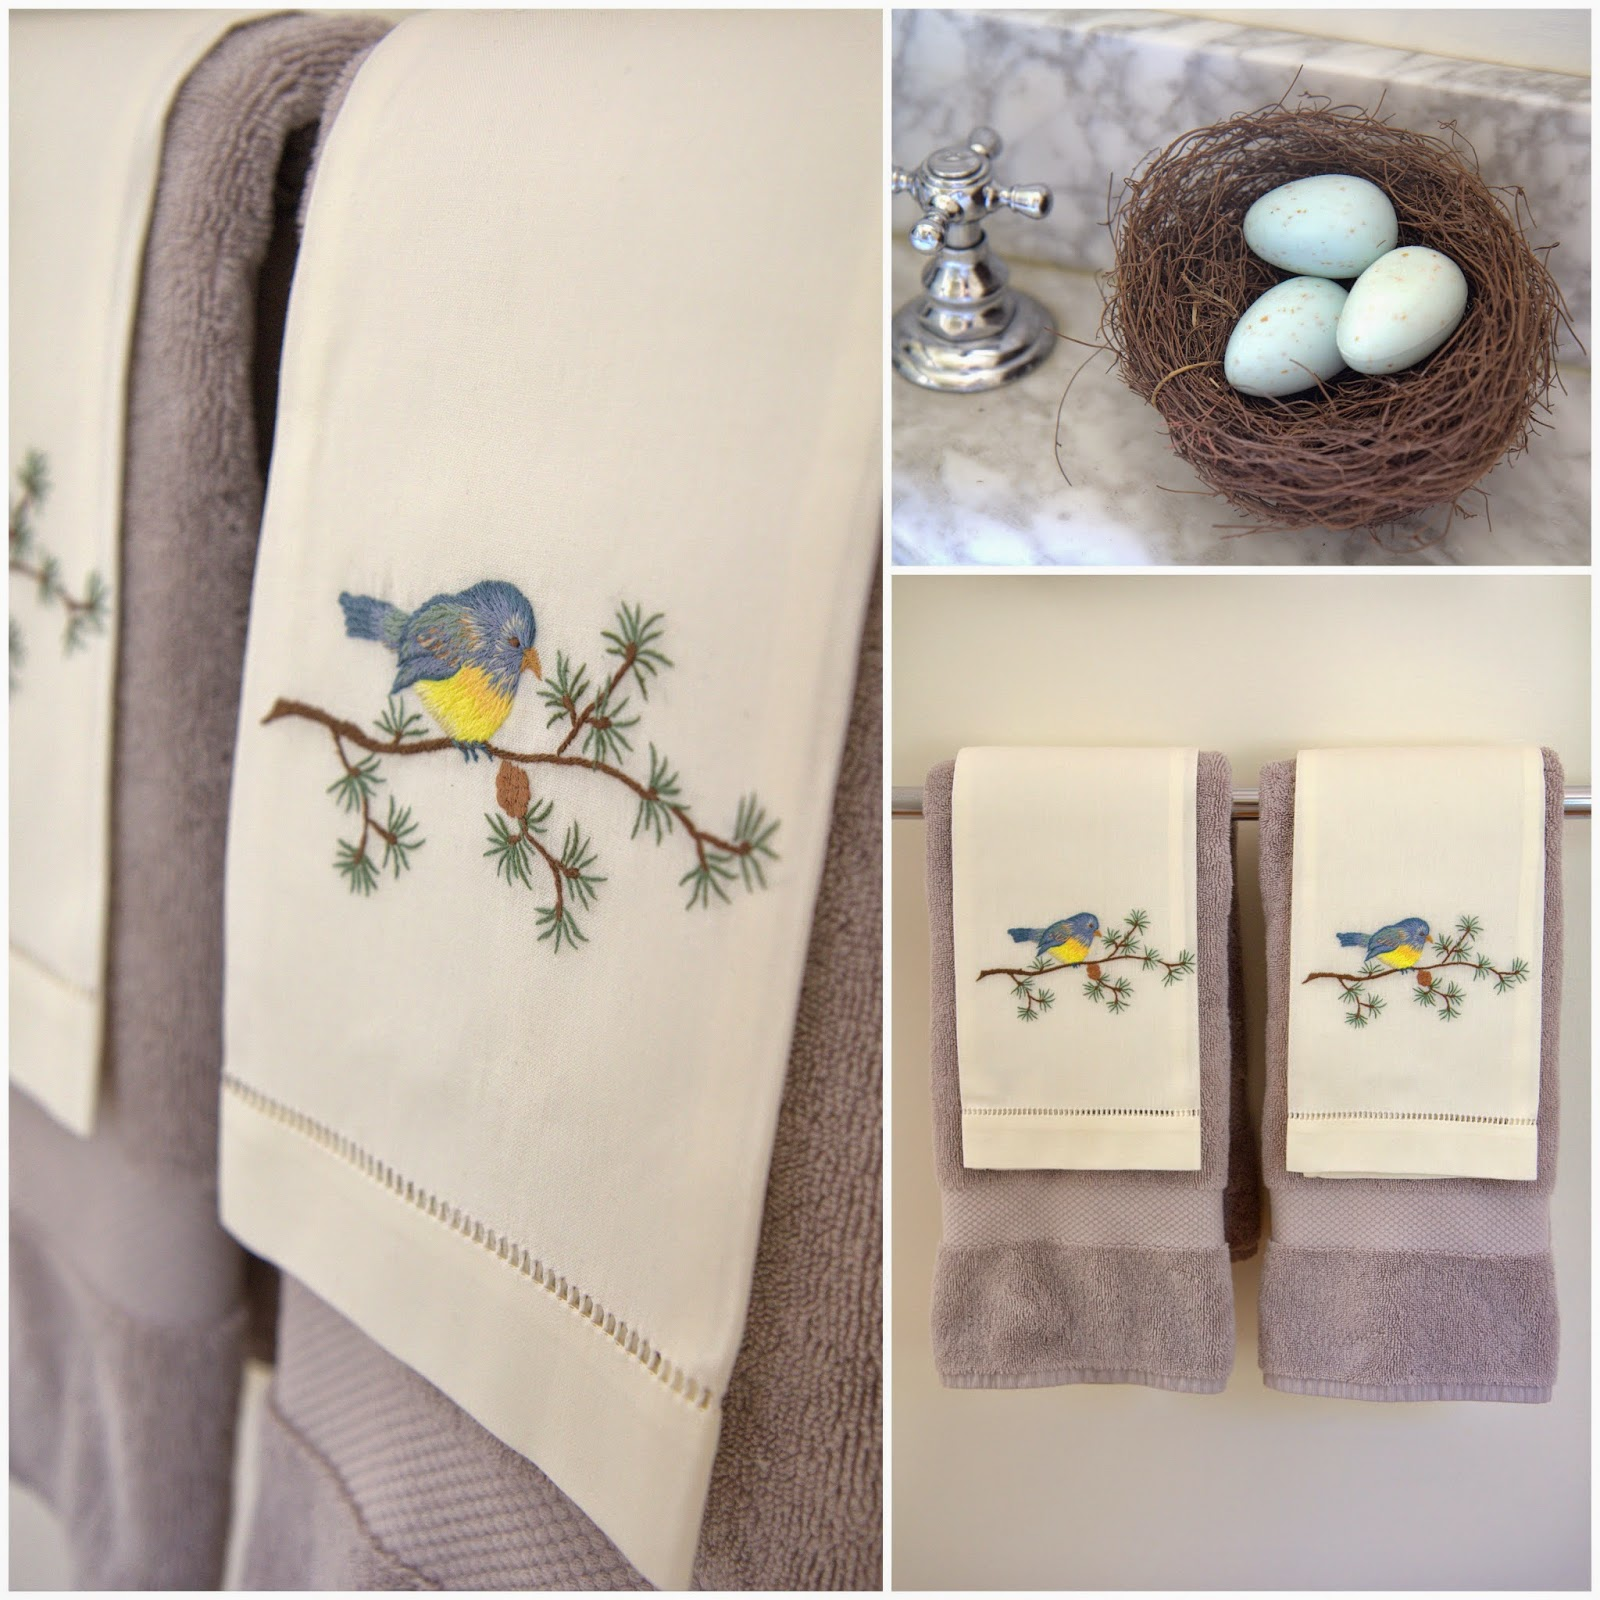 Woodland Party; embroidered bird towls and nest with egg soaps; bathroom decor: Nora's Nest